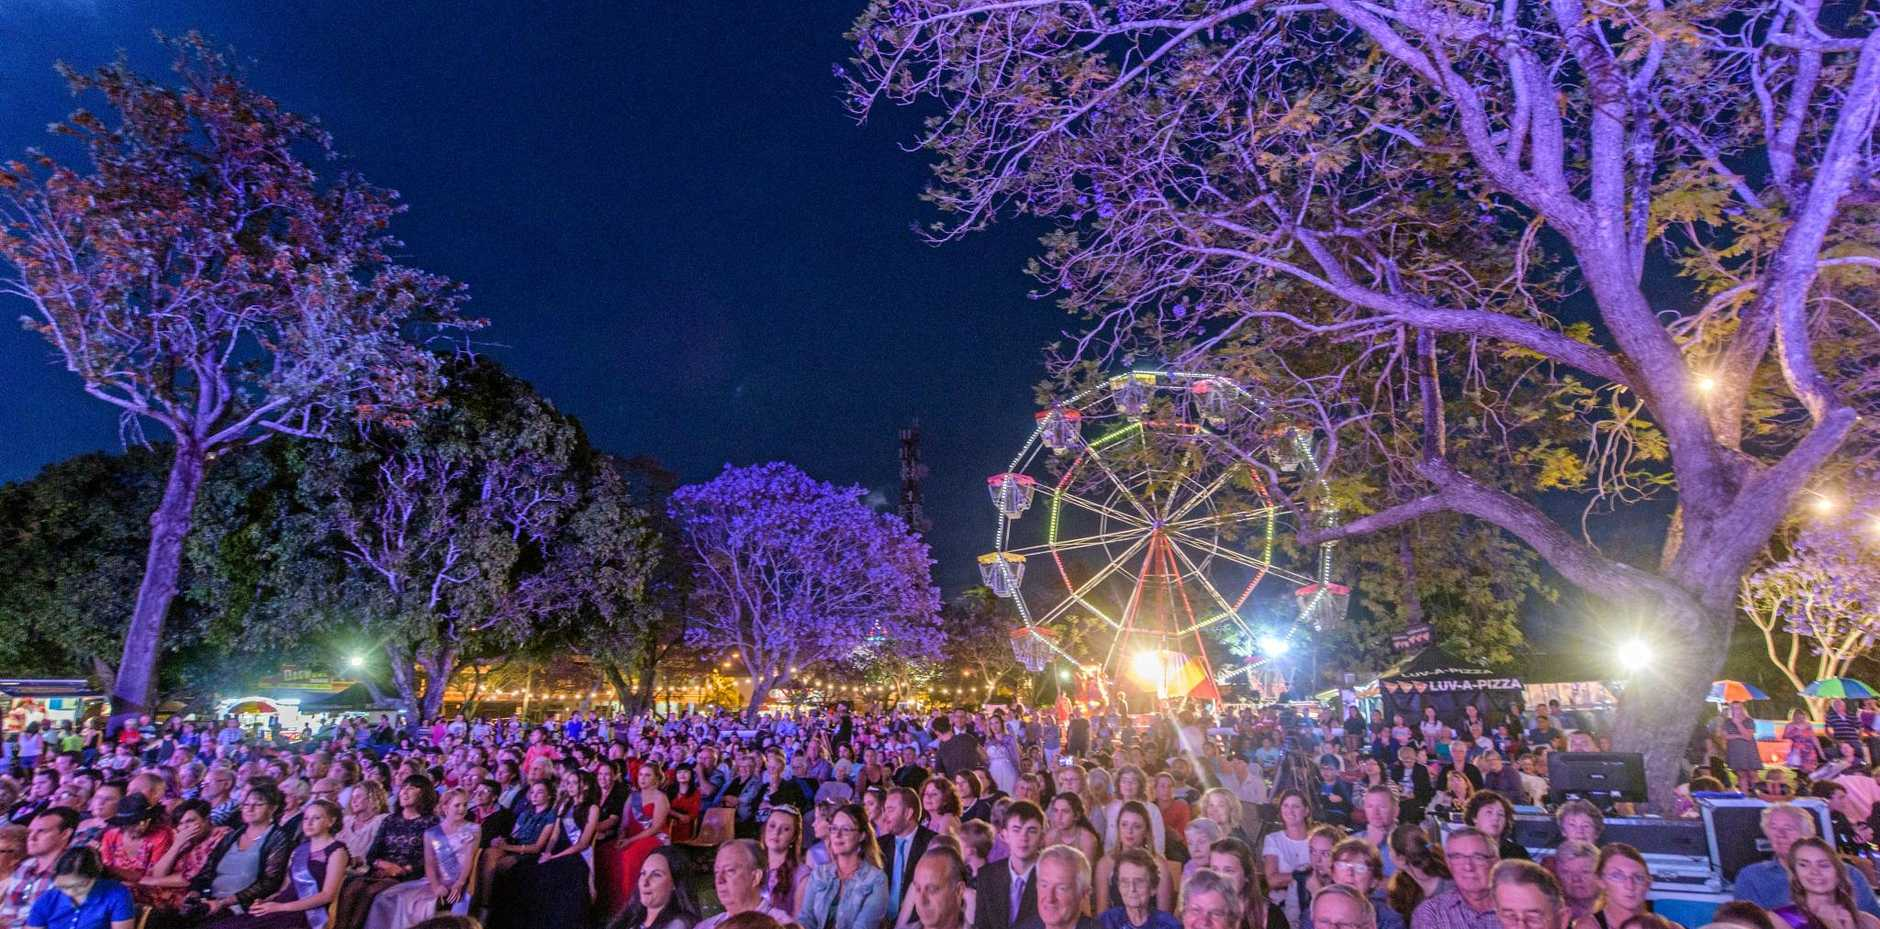 A large crowd gathered under the Jacaranda and the carnival lights to watch the Jacaranda Queen crowning ceremony